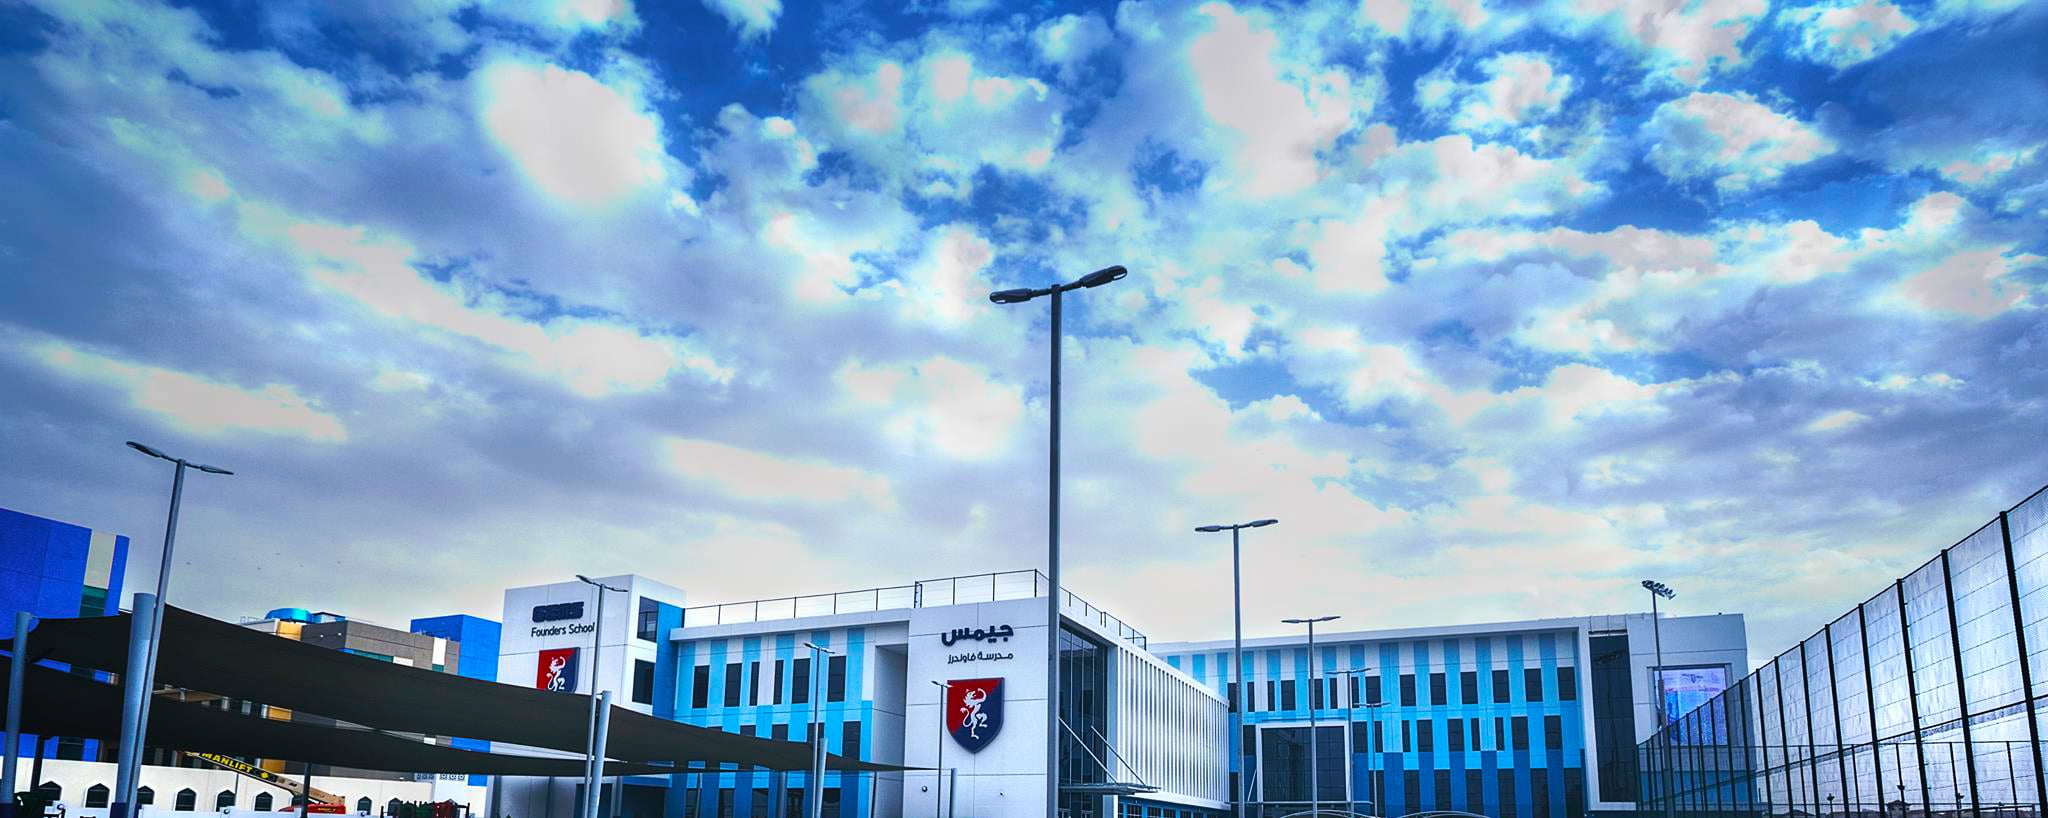 Image of GEMS Founders School in AAl Barsha Dubai showcasing the buildings and main entrance